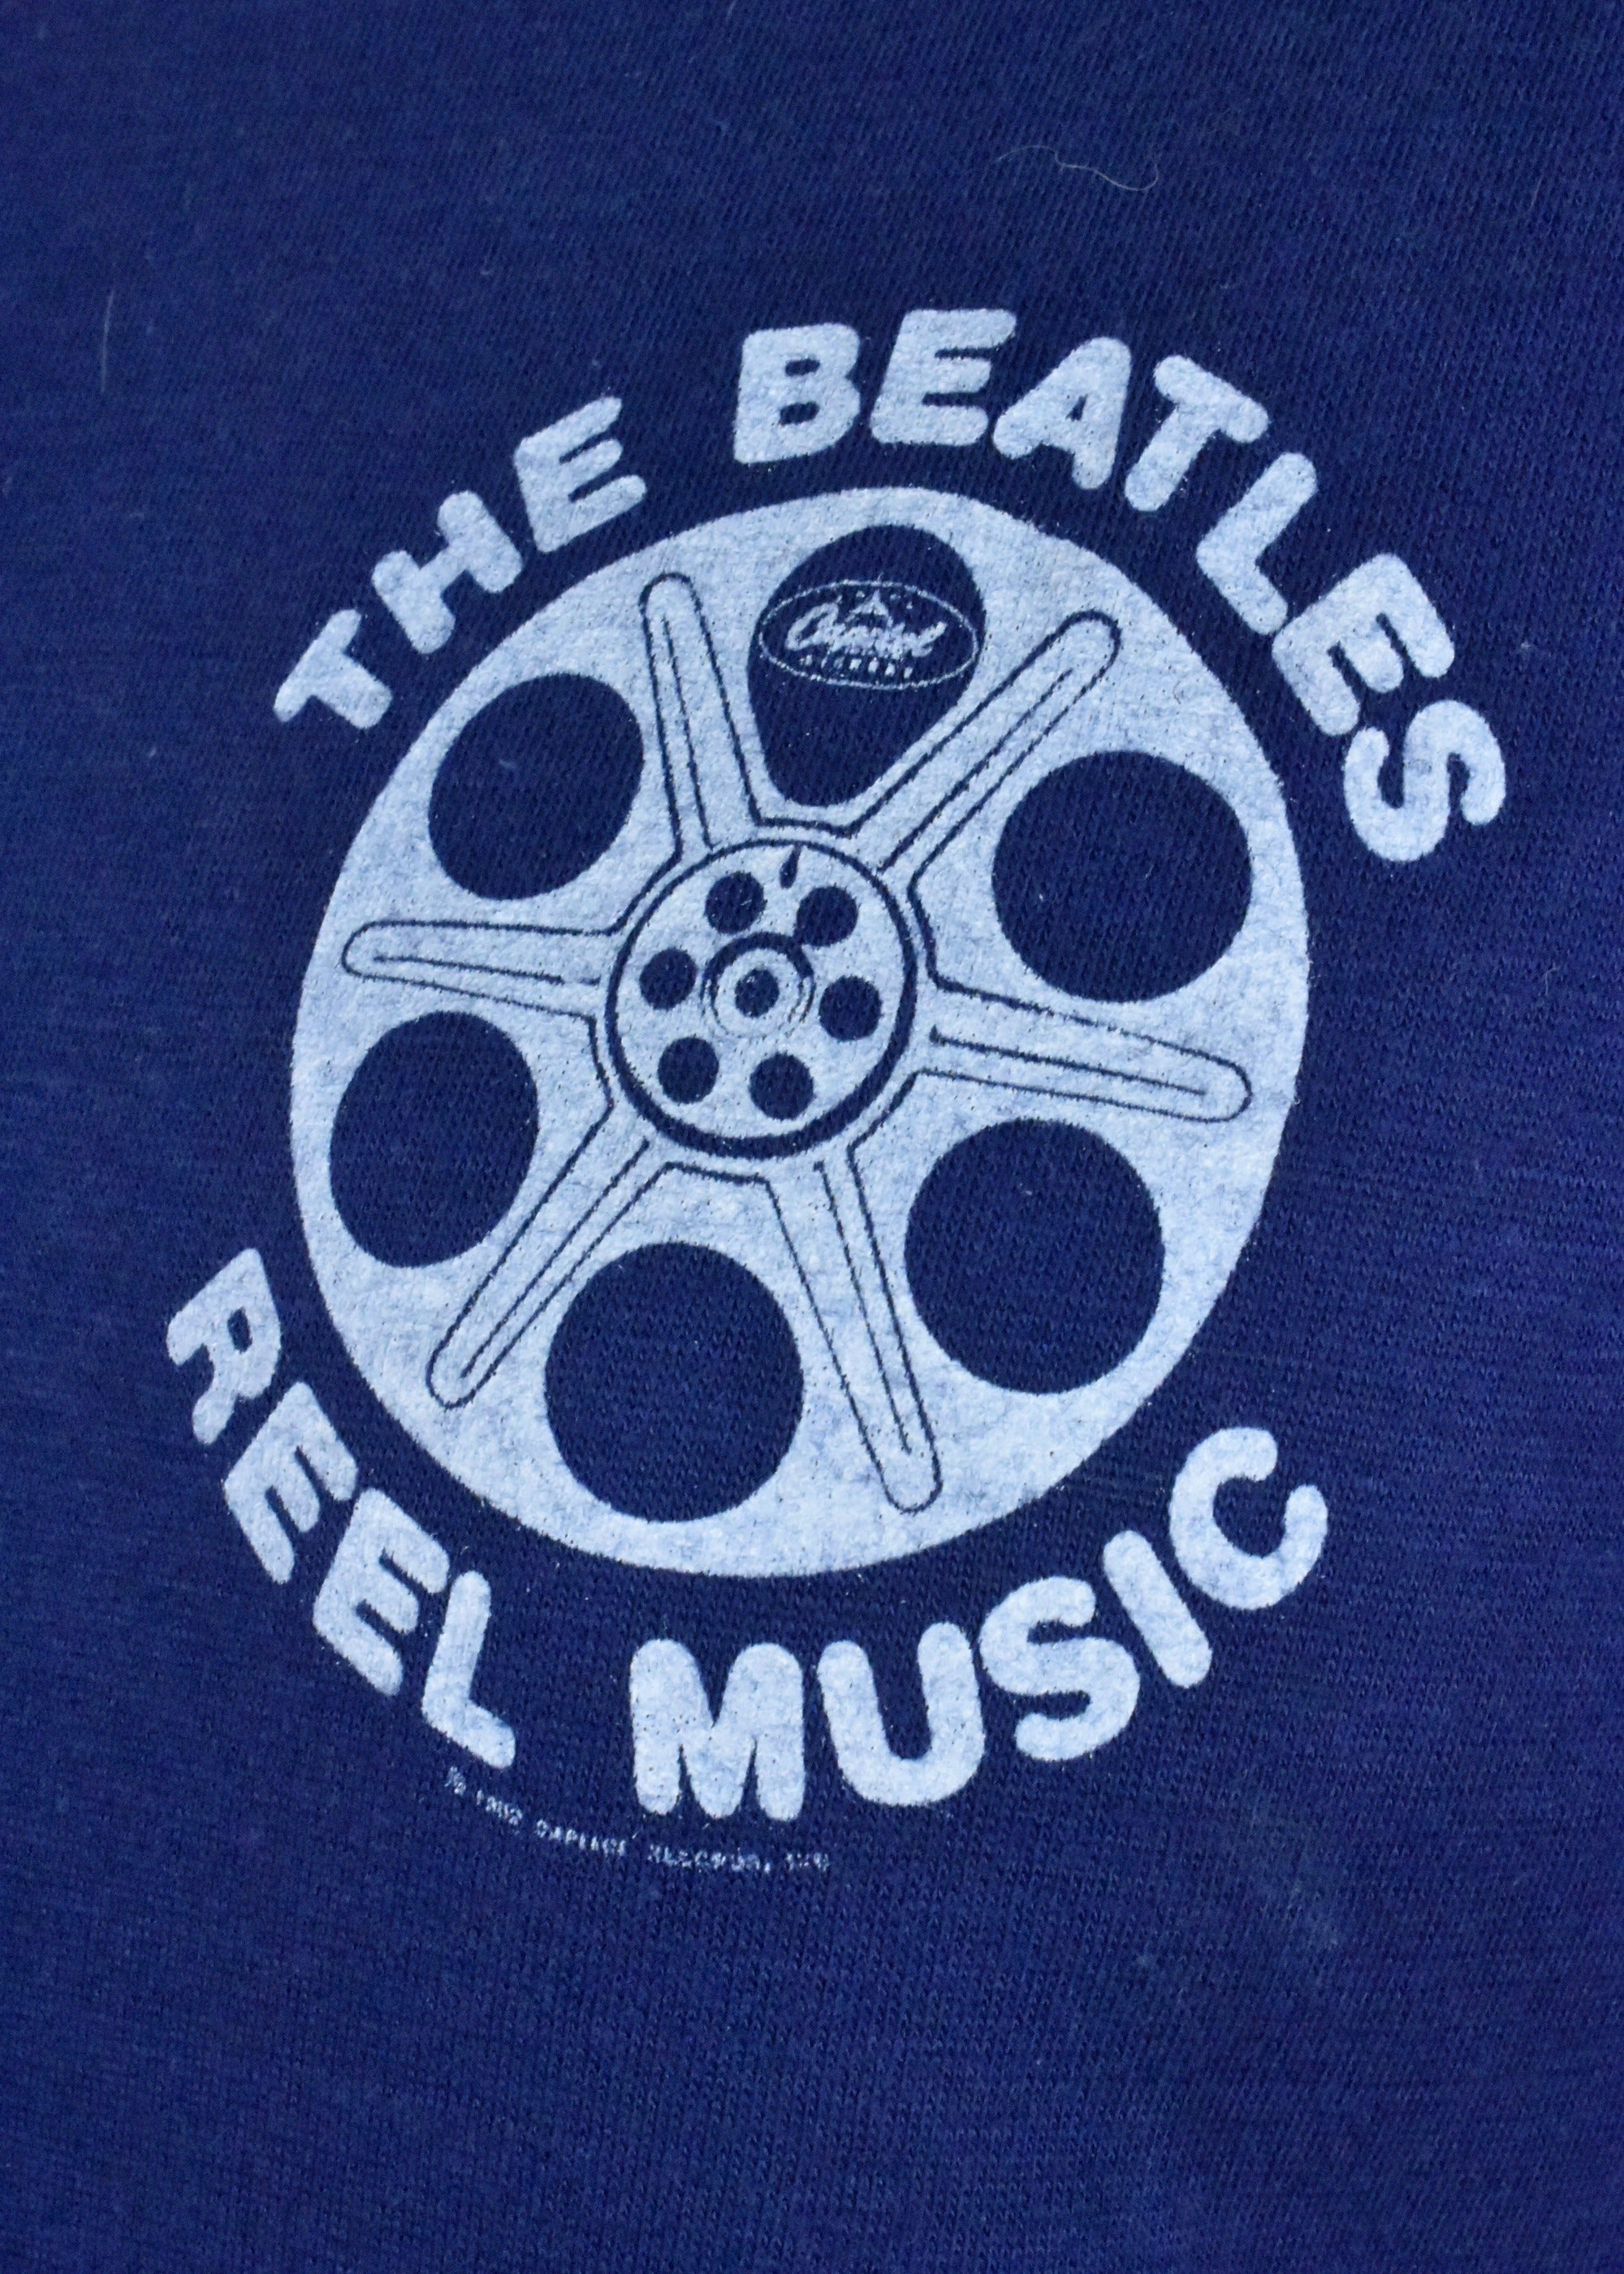 1982 The Beatles Reel Music T-Shirt - Authentic Vintage!